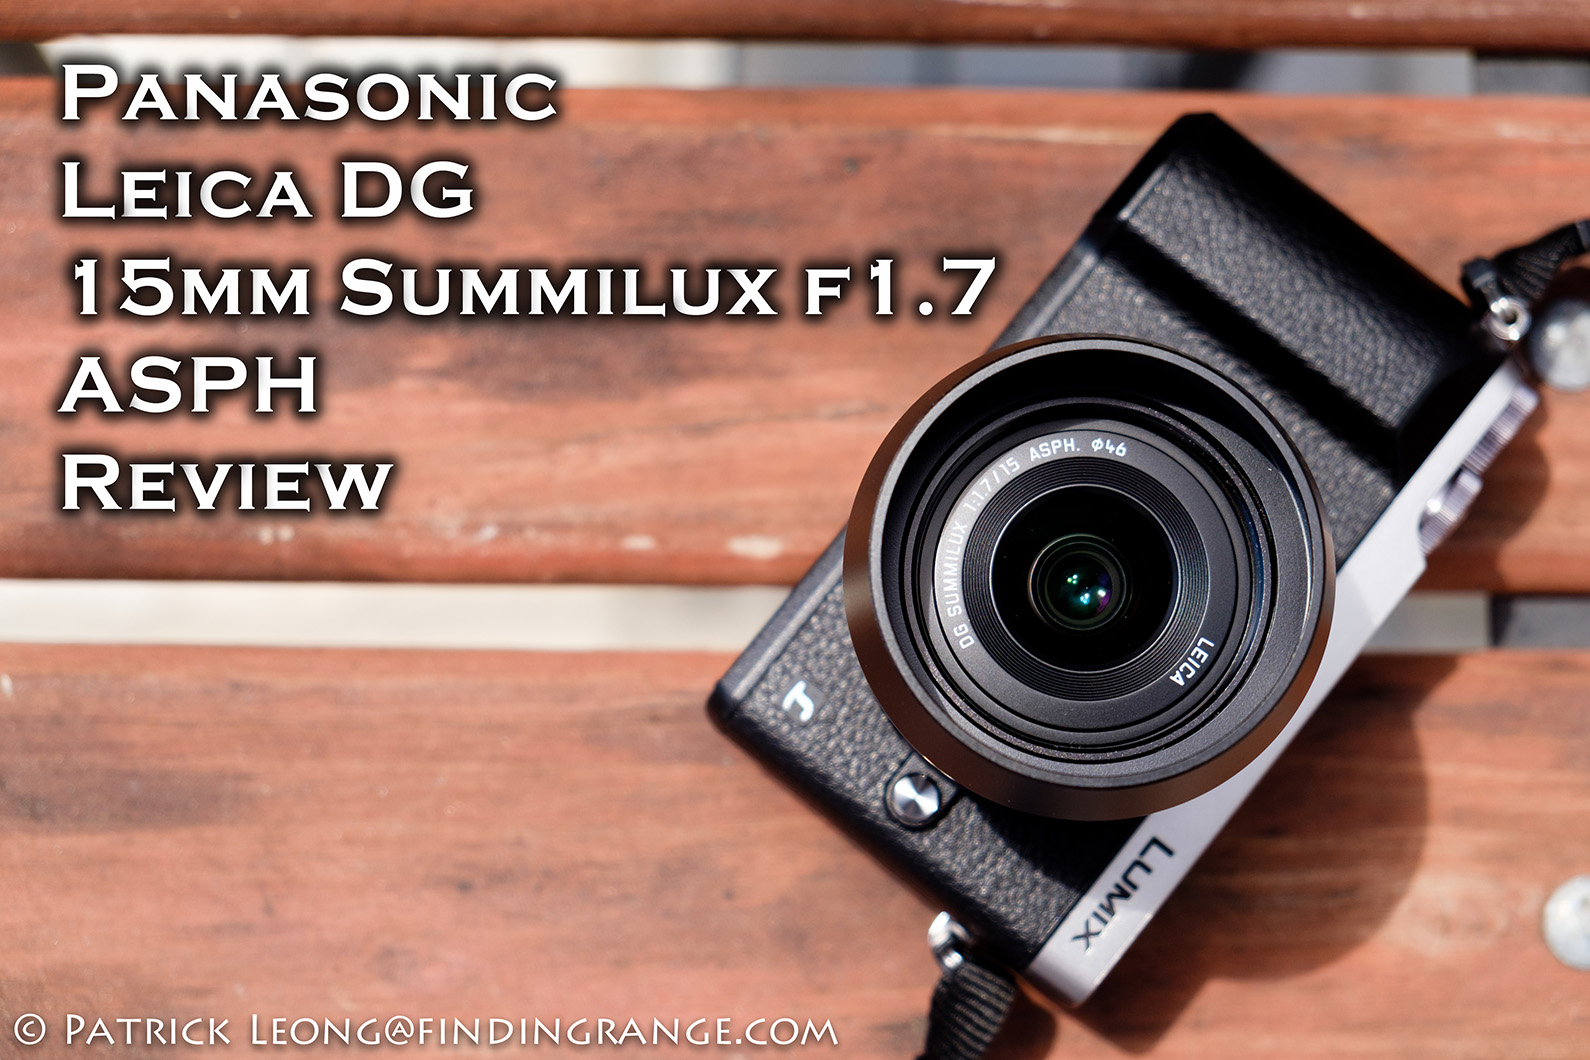 Panasonic-Lumix-GX85-Leica-DG-15-Summilux-f1.7-ASPH-Review-1